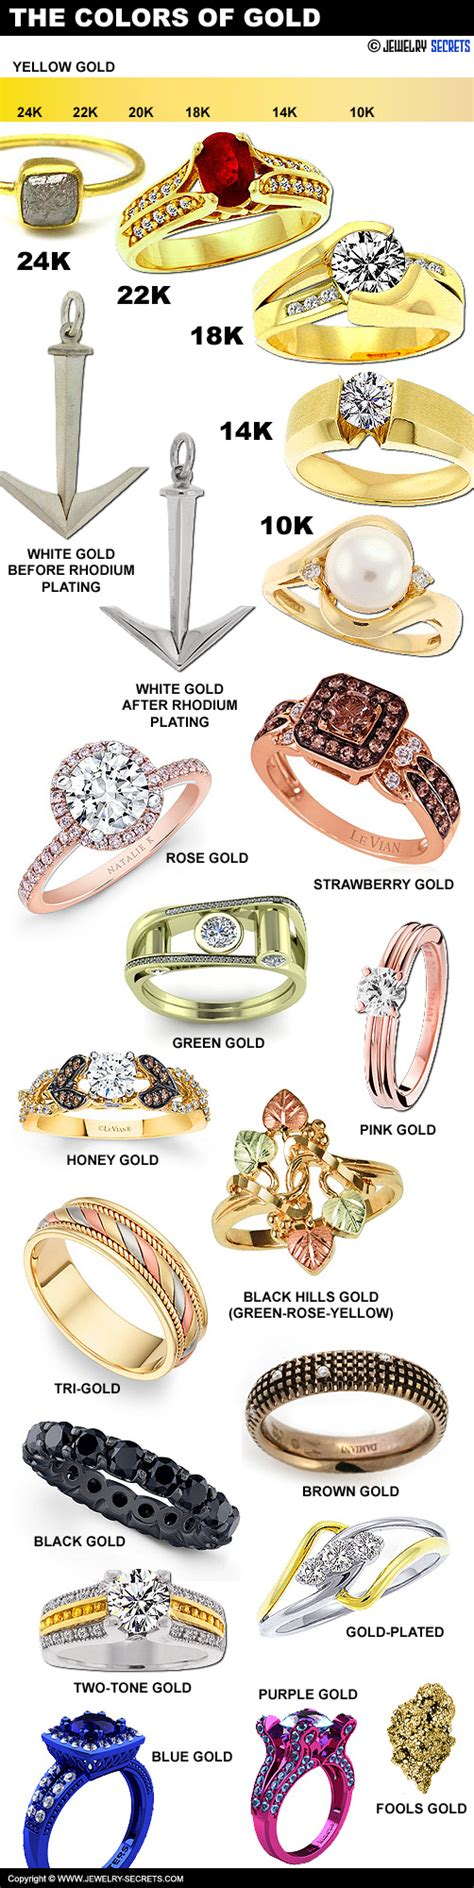 different colors of gold jewelry secrets